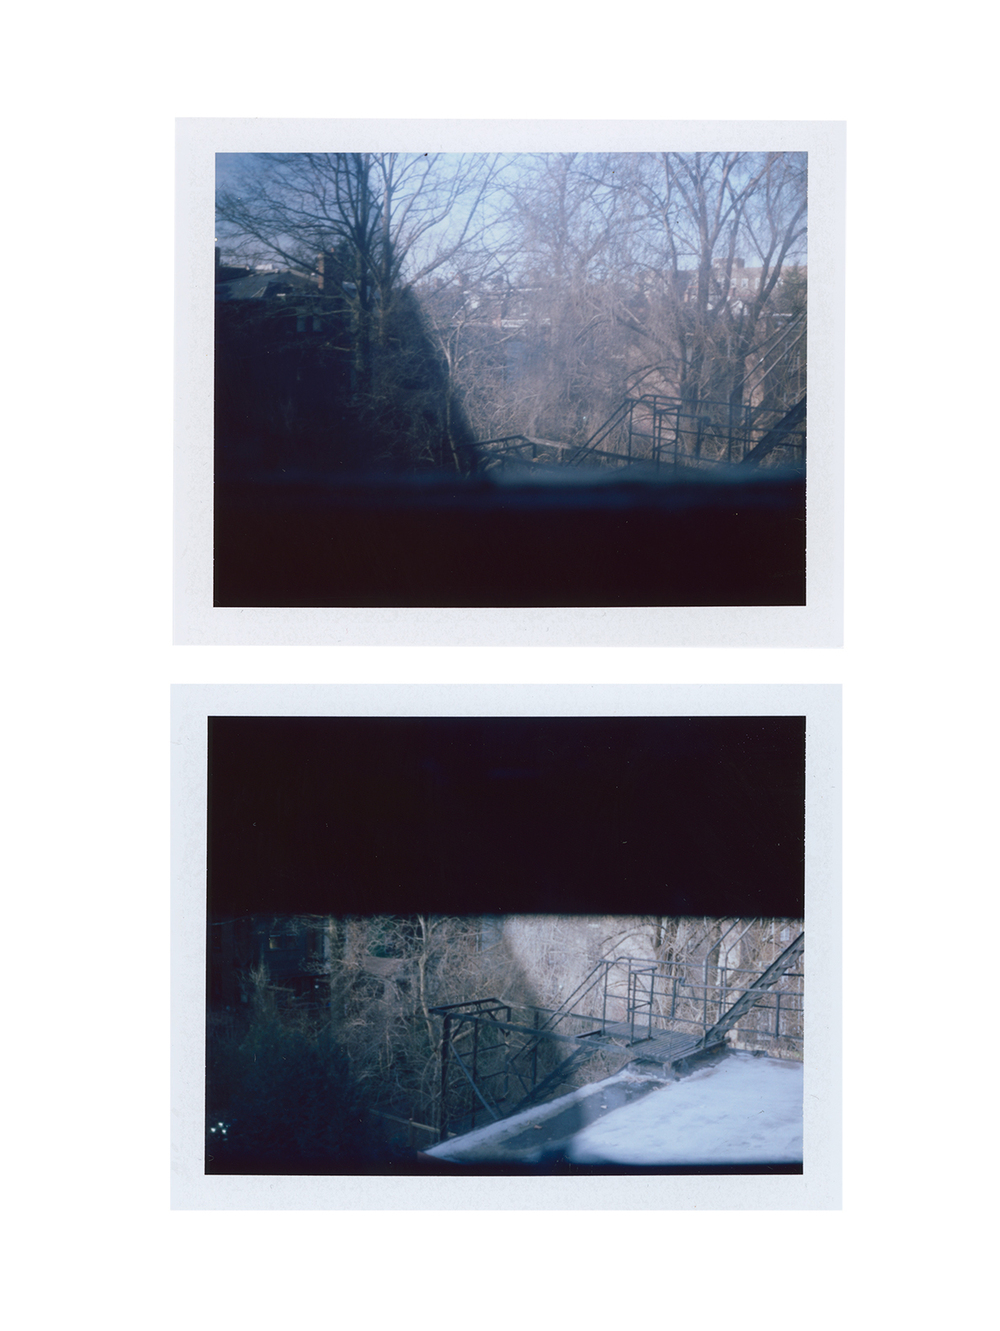 Just Another Event Horizon (part two) , digital image from FP-100c, 2015.